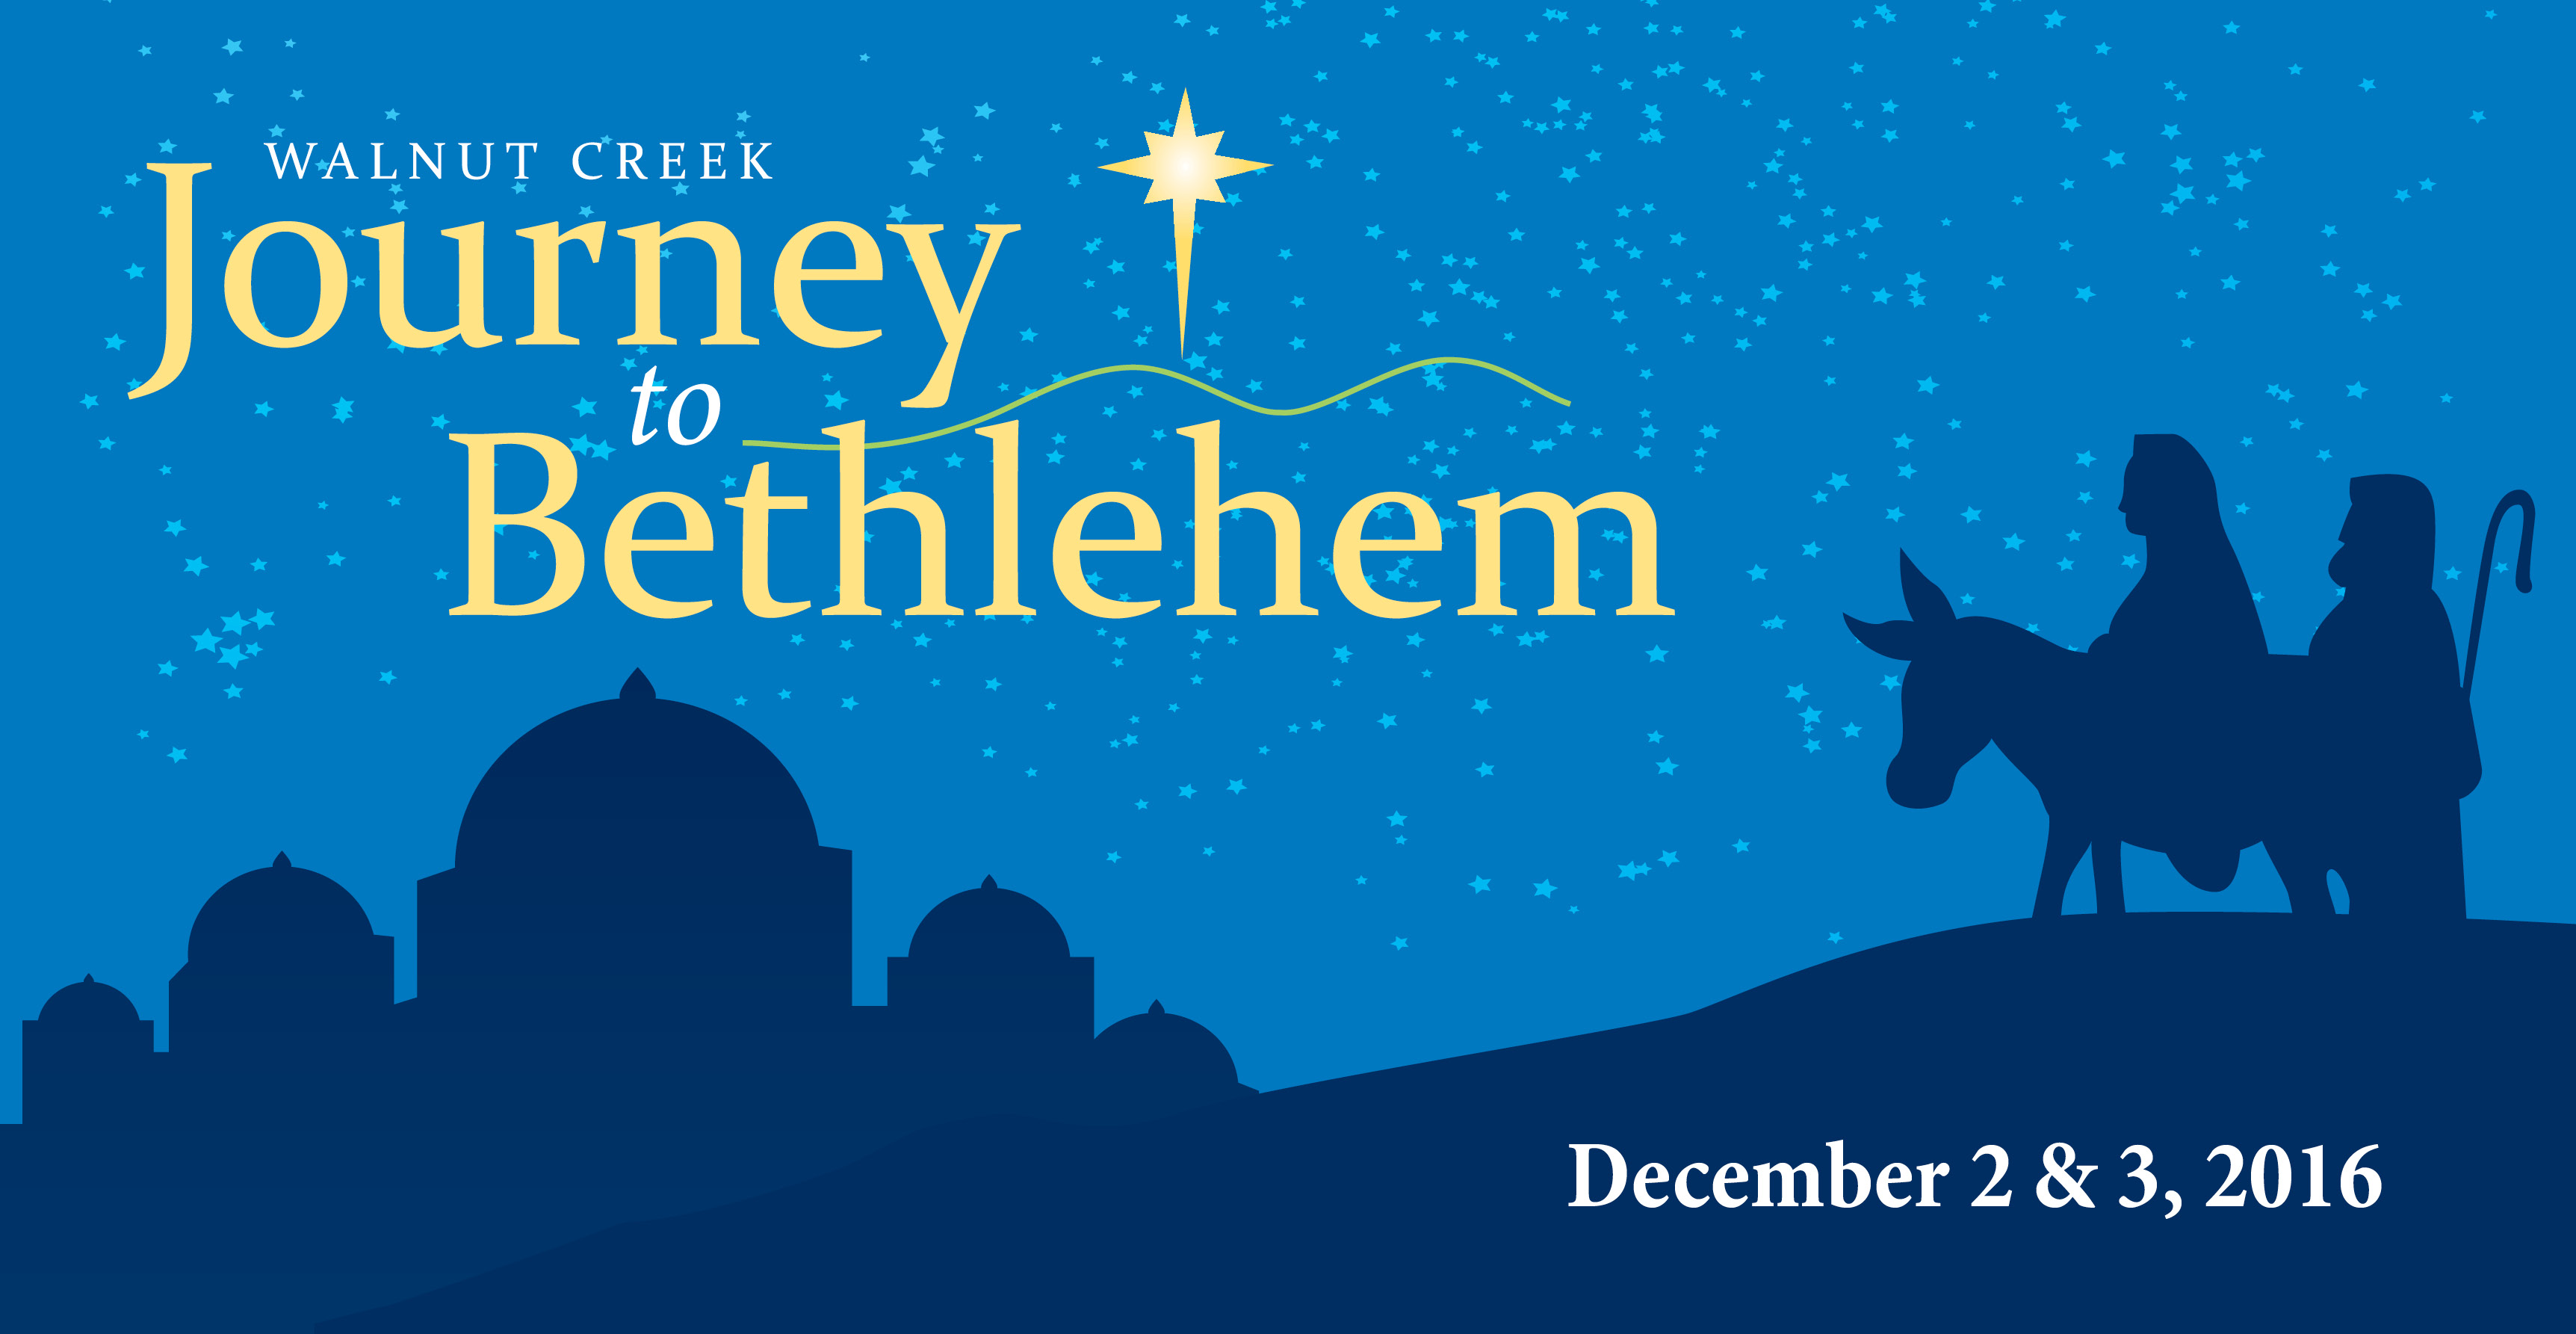 Journey to Bethlehem in Walnut Creek, Ohio - December 2 & 3, 2016